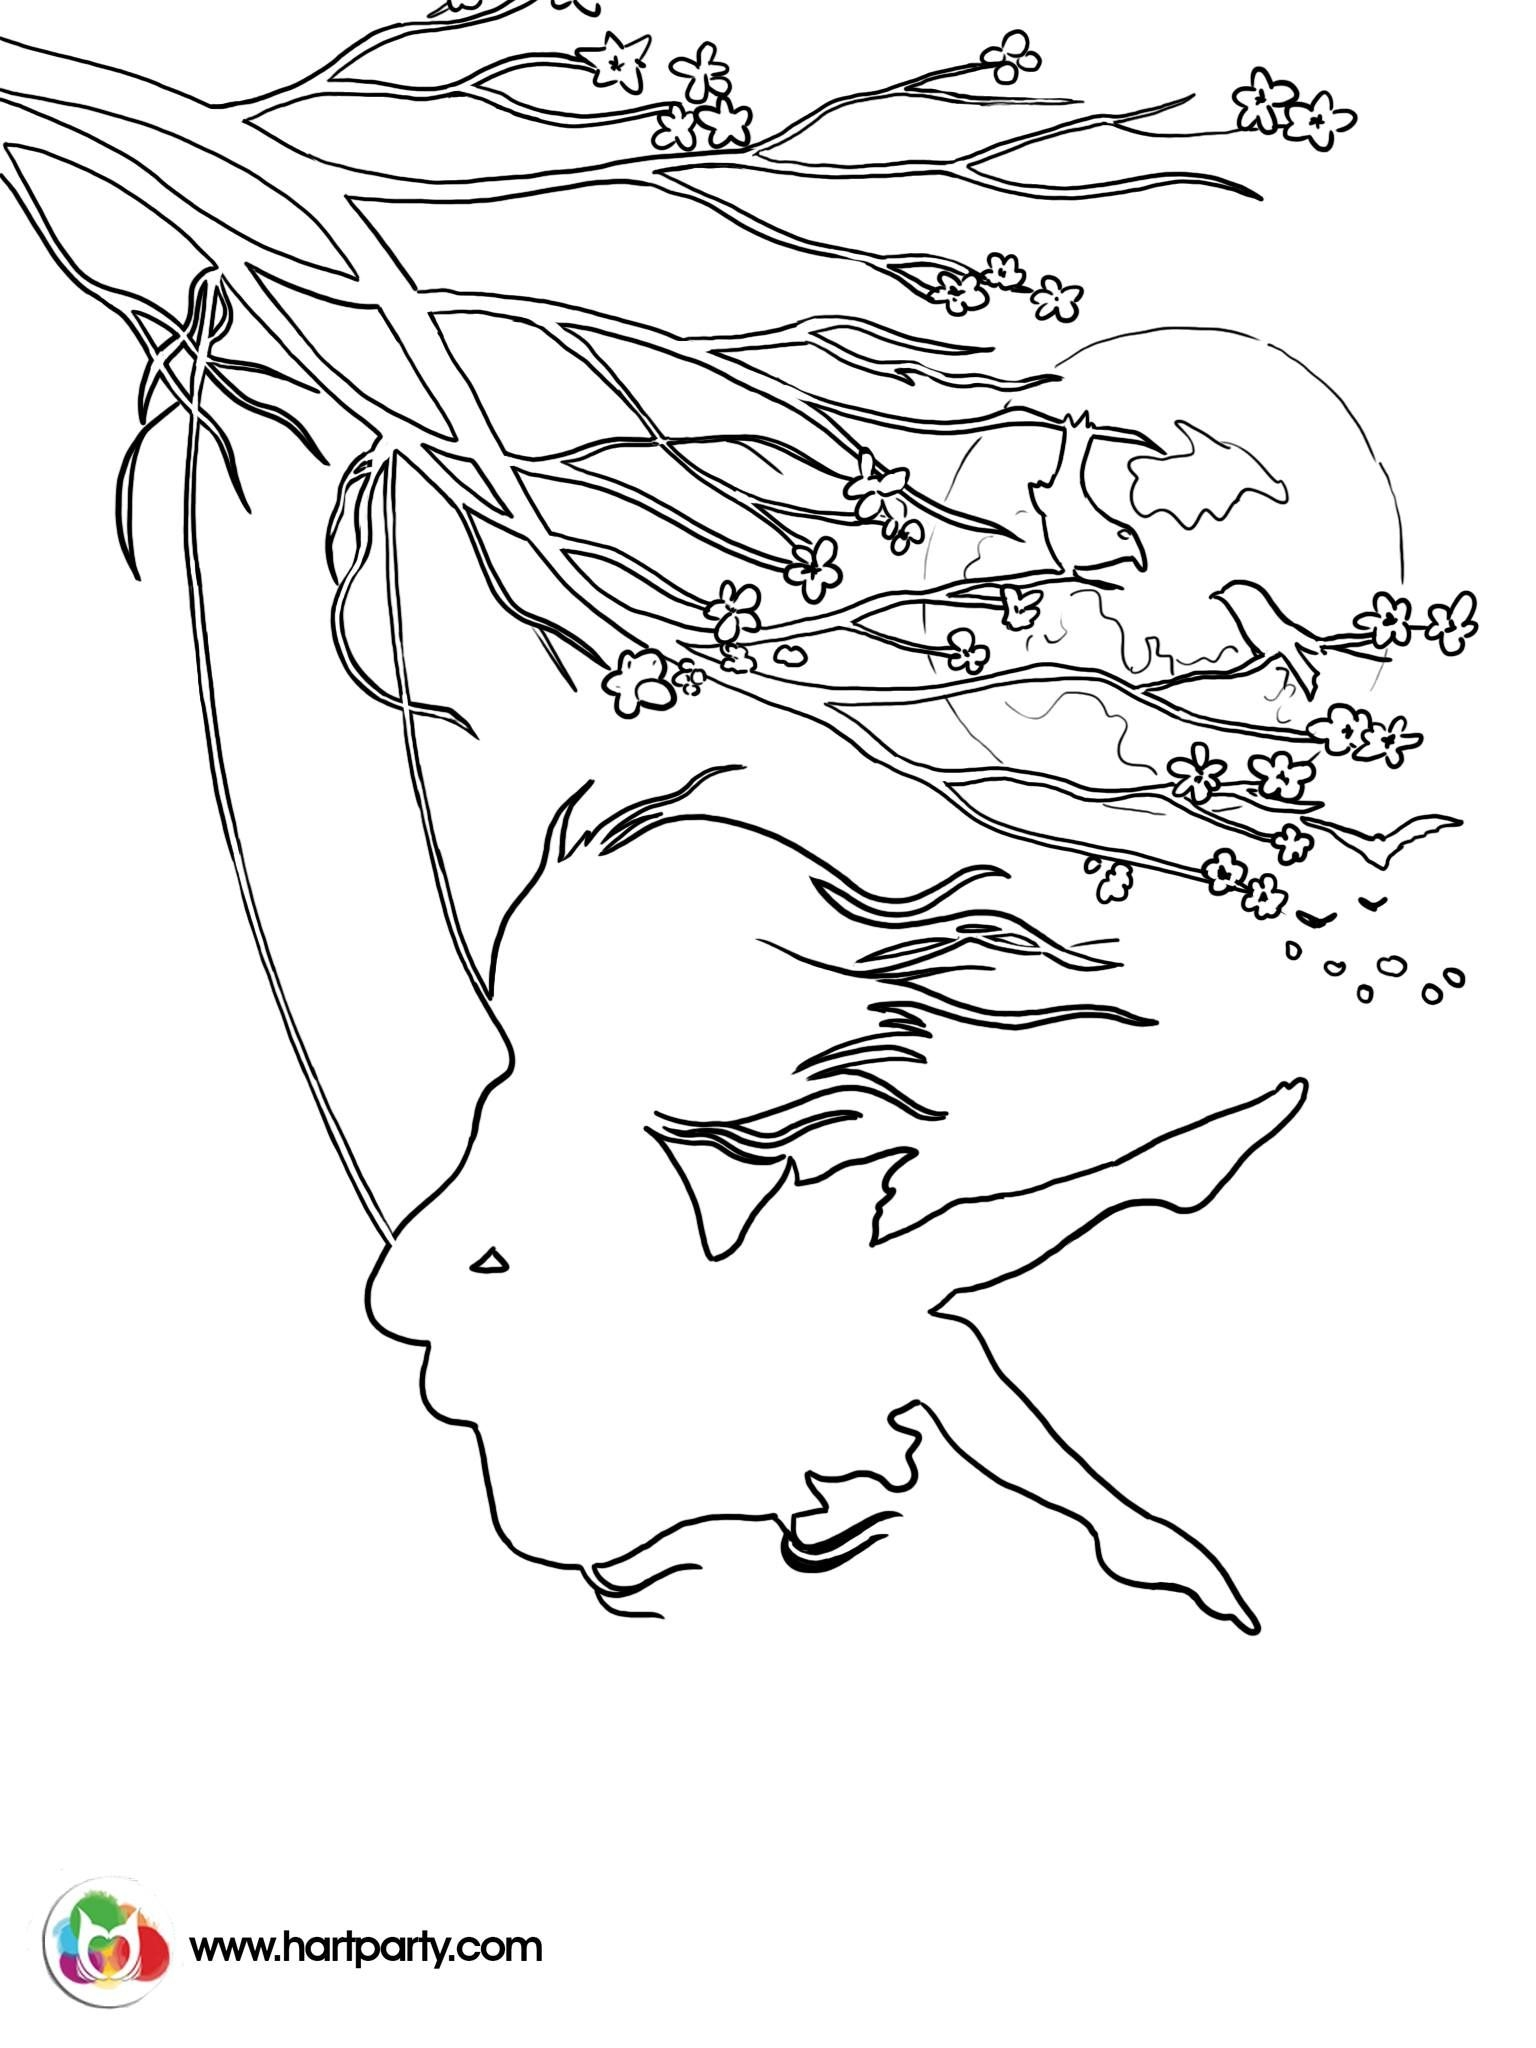 1536x2048 Hopes Swing Traceable Coloring Page Of A Girl On Swing From Cherry